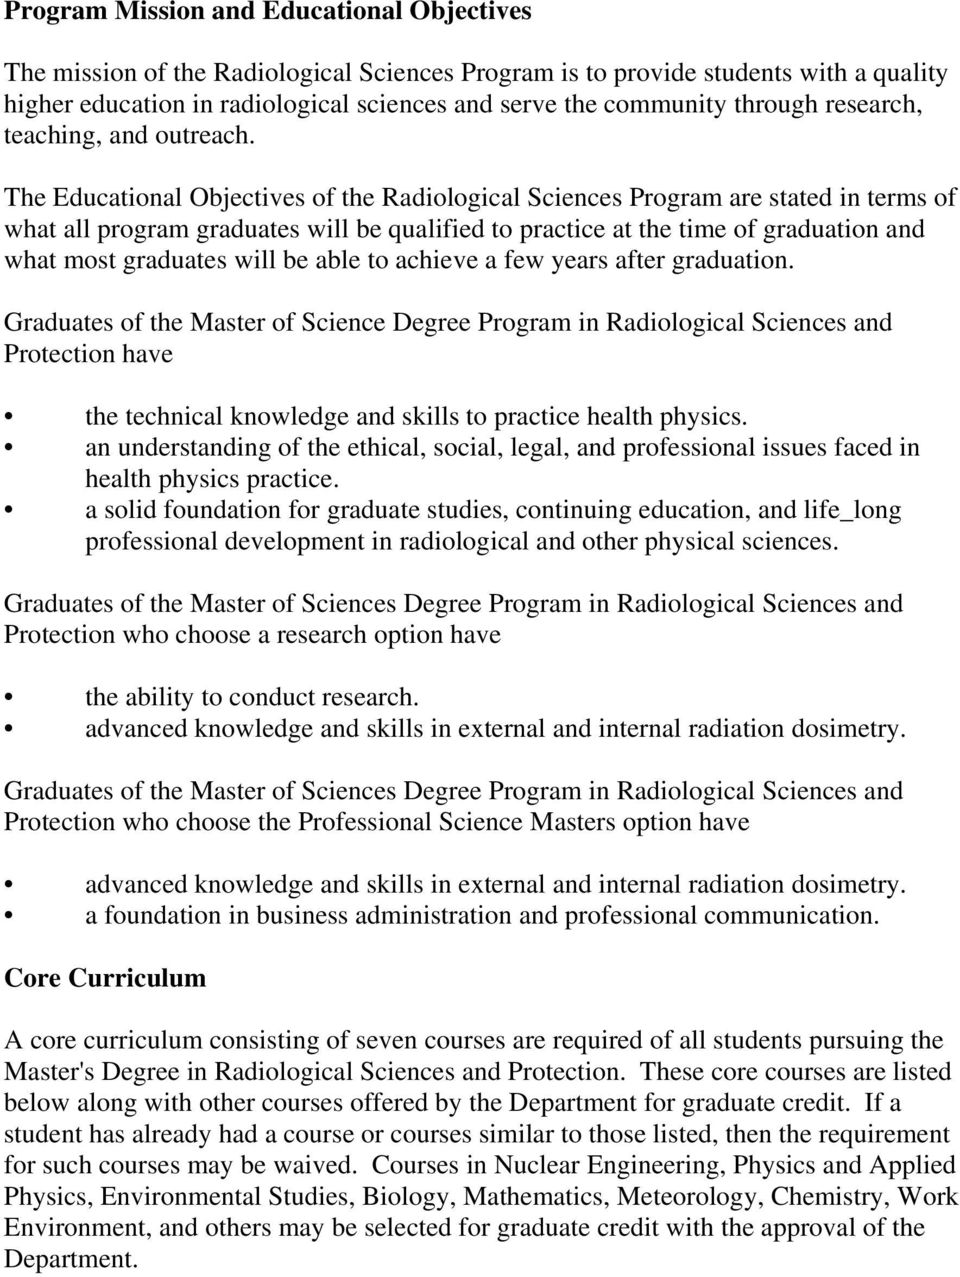 The Educational Objectives of the Radiological Sciences Program are stated in terms of what all program graduates will be qualified to practice at the time of graduation and what most graduates will